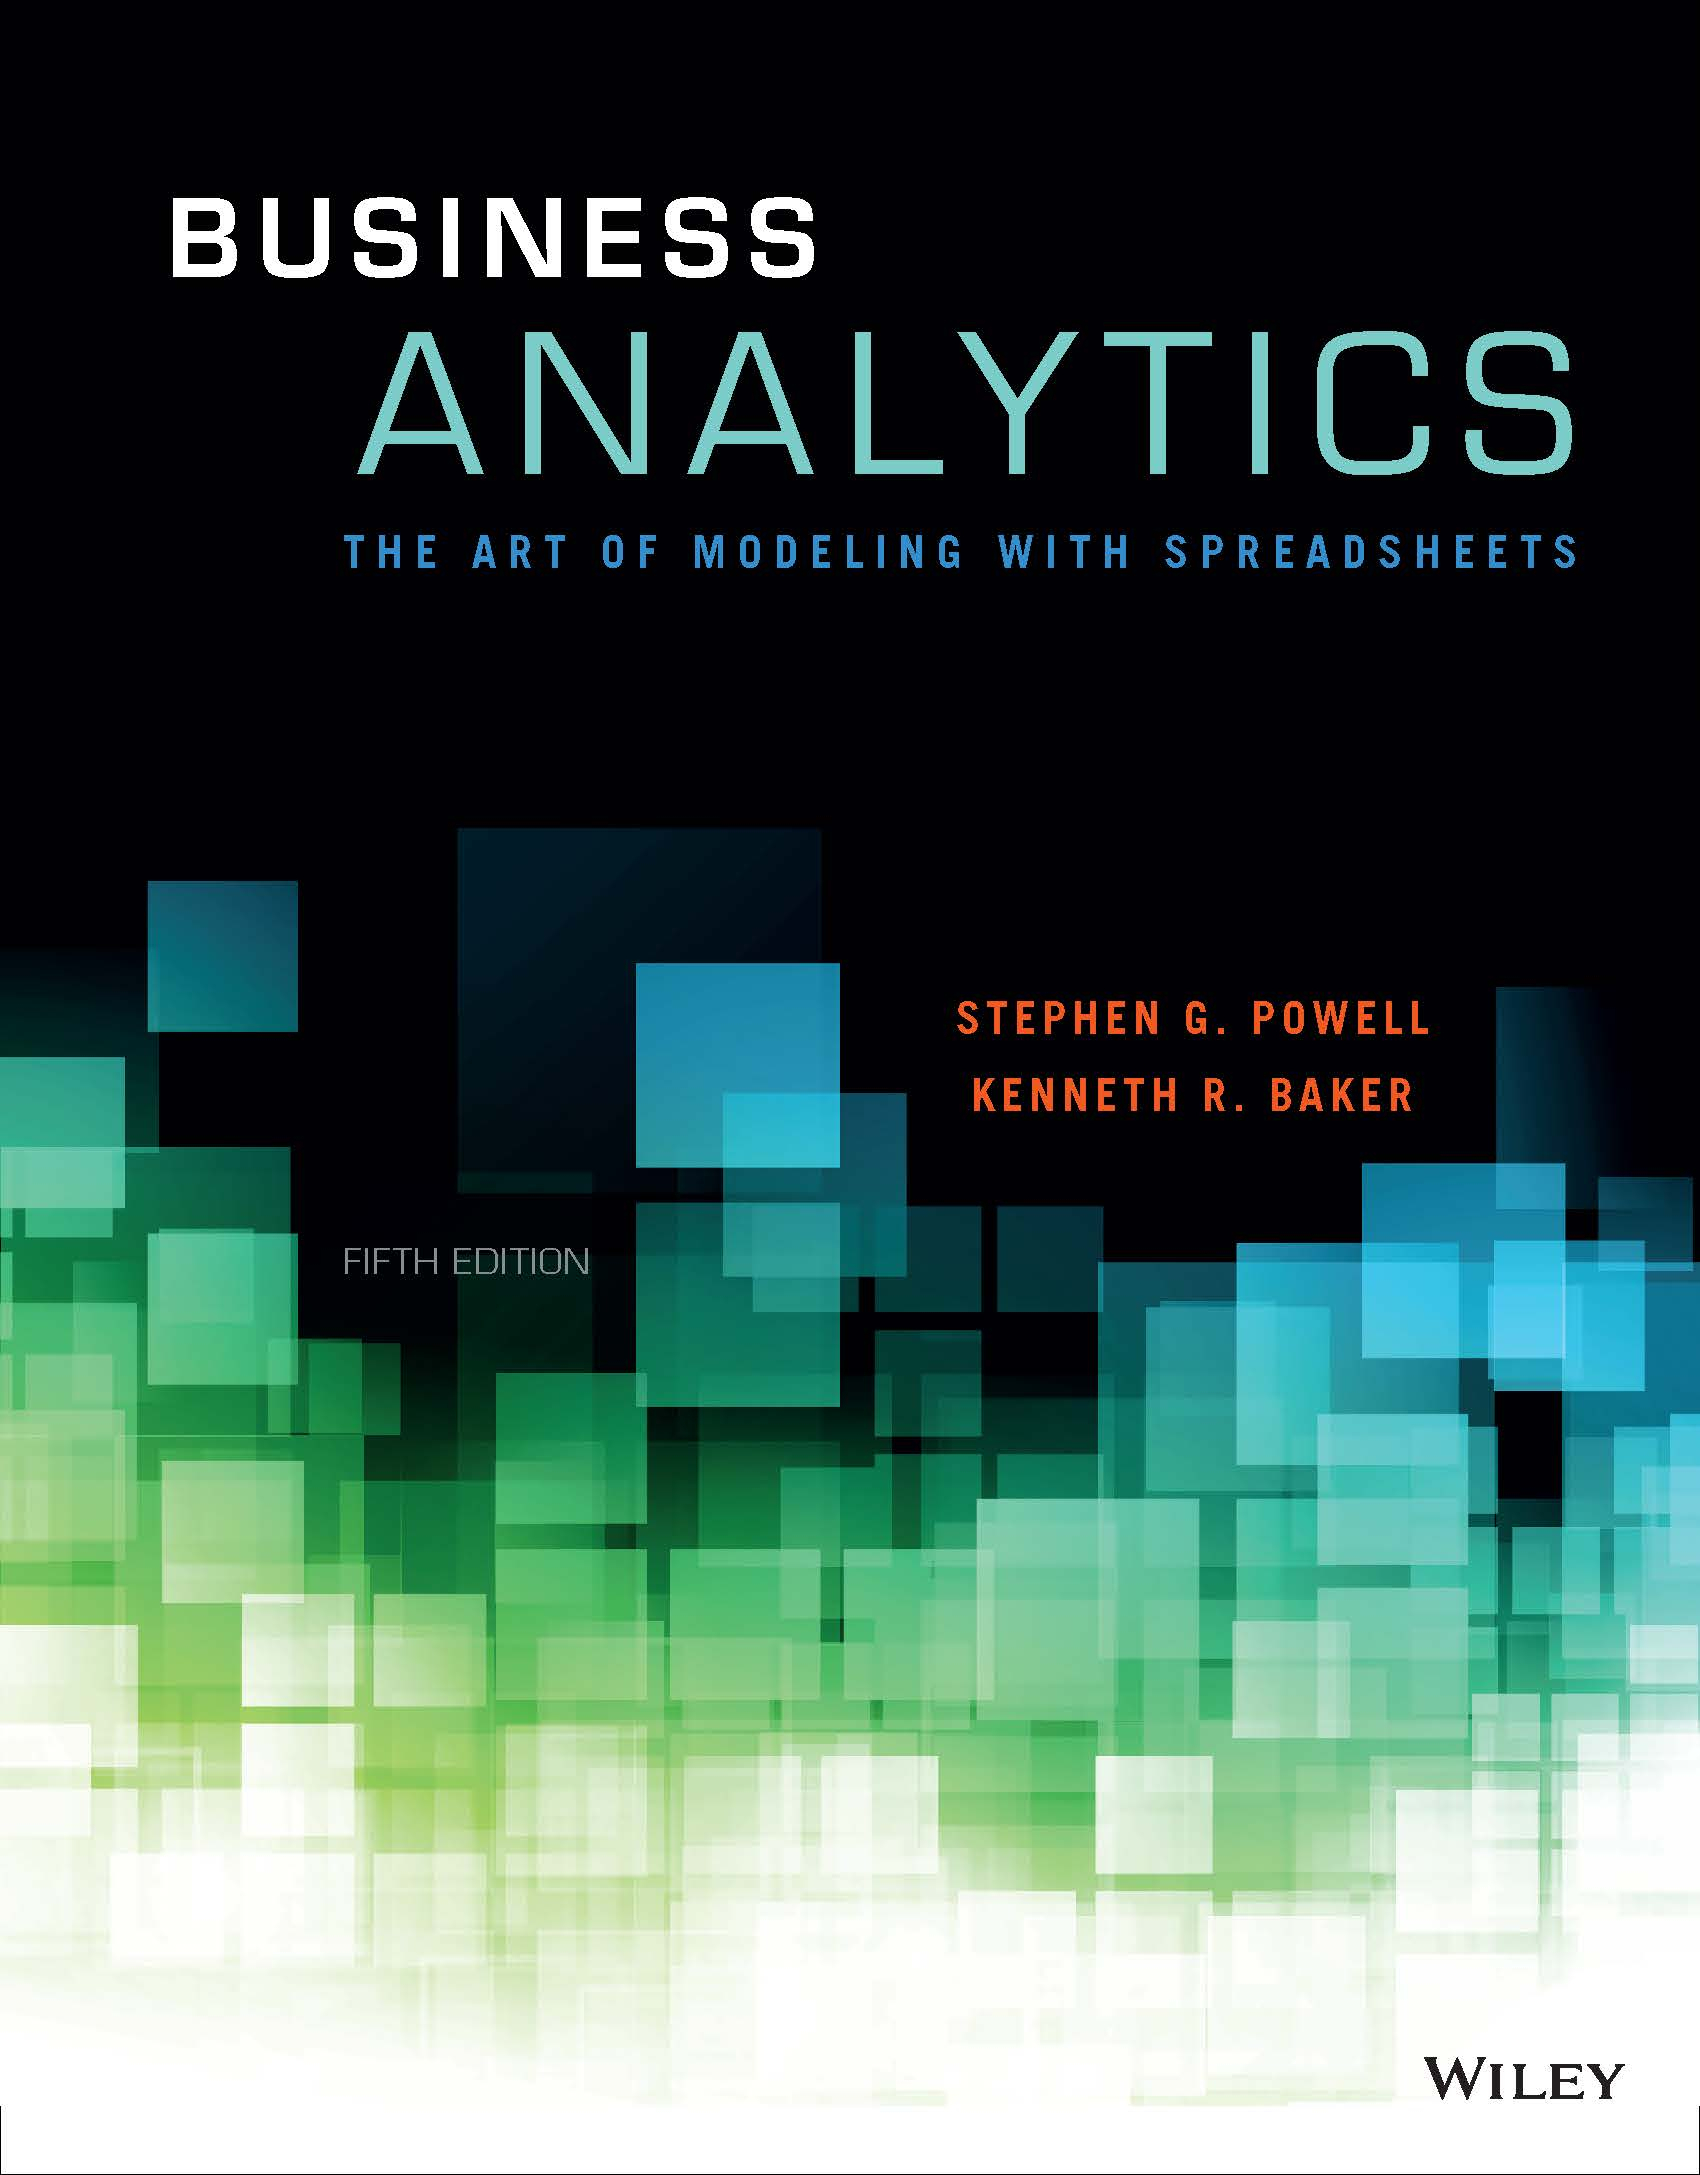 Business Analytics The Art Of Modeling With Spreadsheets Pdf With Regard To Business Analytics :: About The Book Business Analytics The Art Of Modeling With Spreadsheets Pdf Printable Spreadshee Printable Spreadshee business analytics the art of modeling with spreadsheets 5th edition pdf